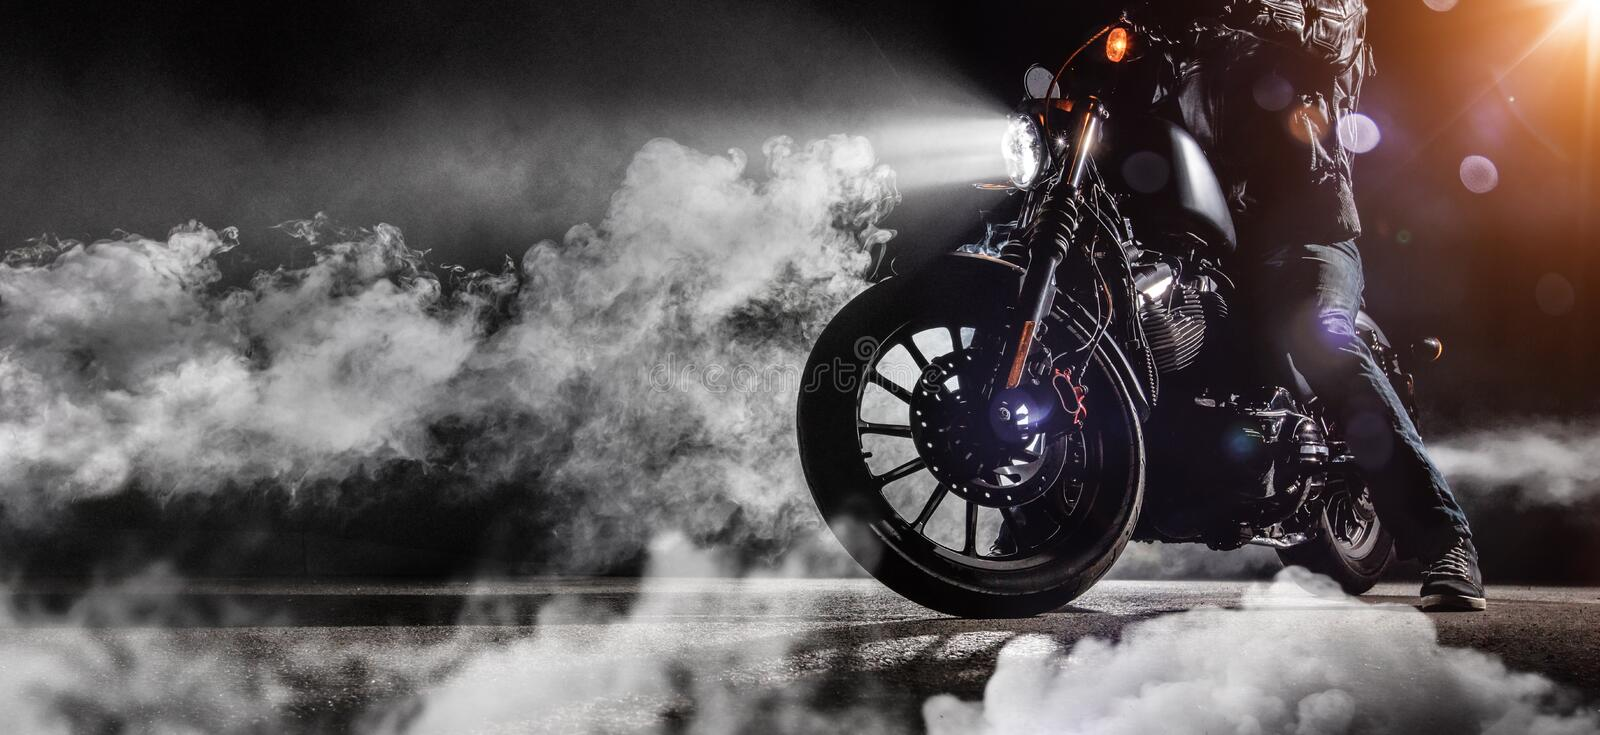 Close-up of high power motorcycle chopper with man rider at night. Fog with backlights on background royalty free stock photo